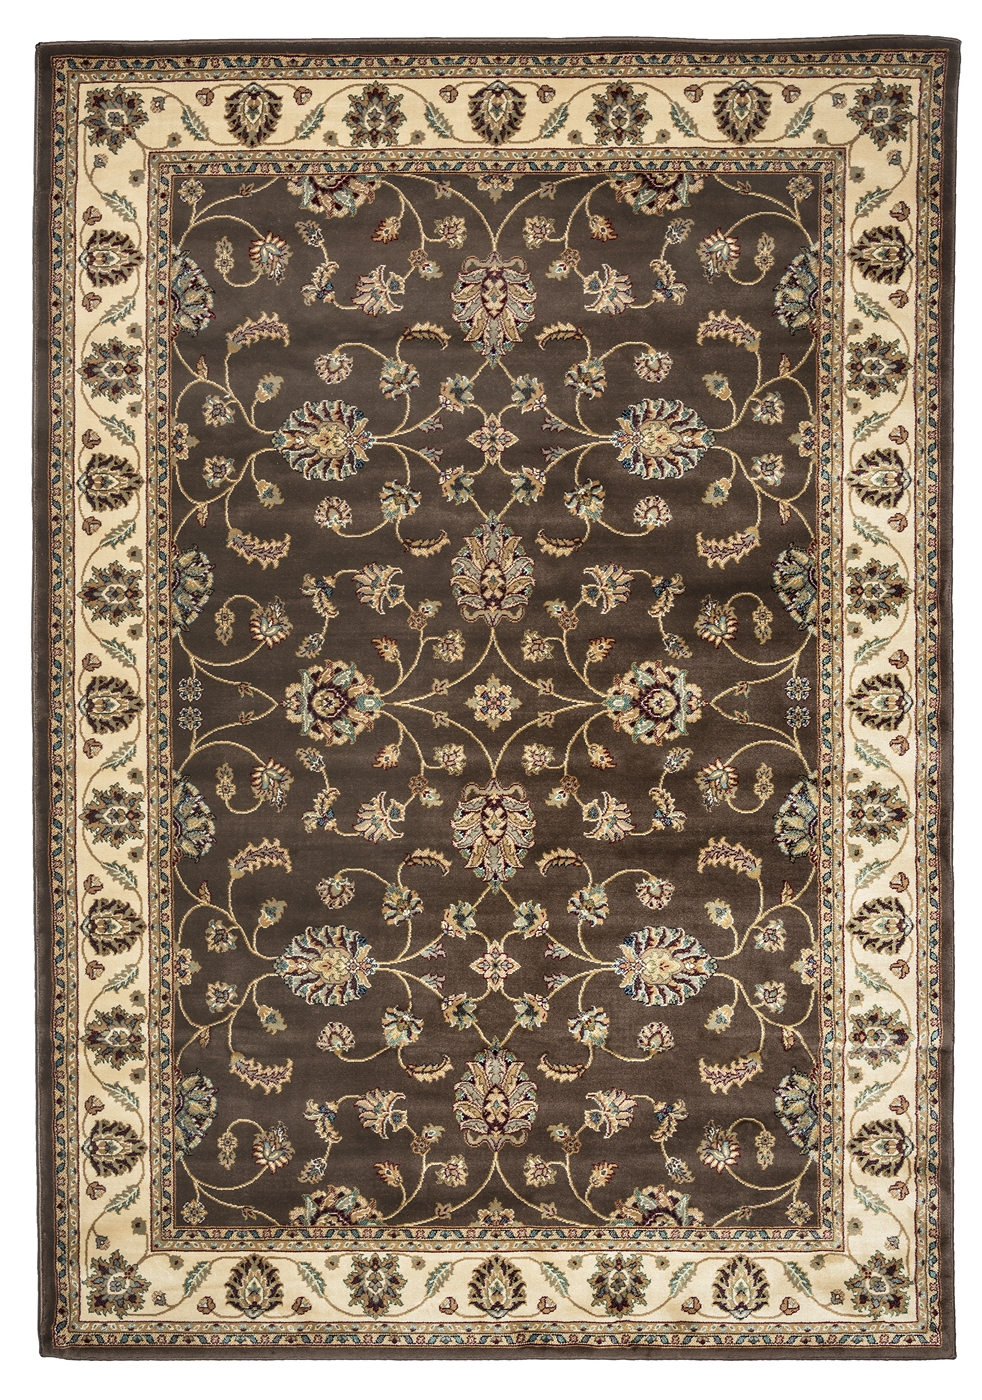 Chateau Traditional Border Area Rug In Brown amp Ivory 33